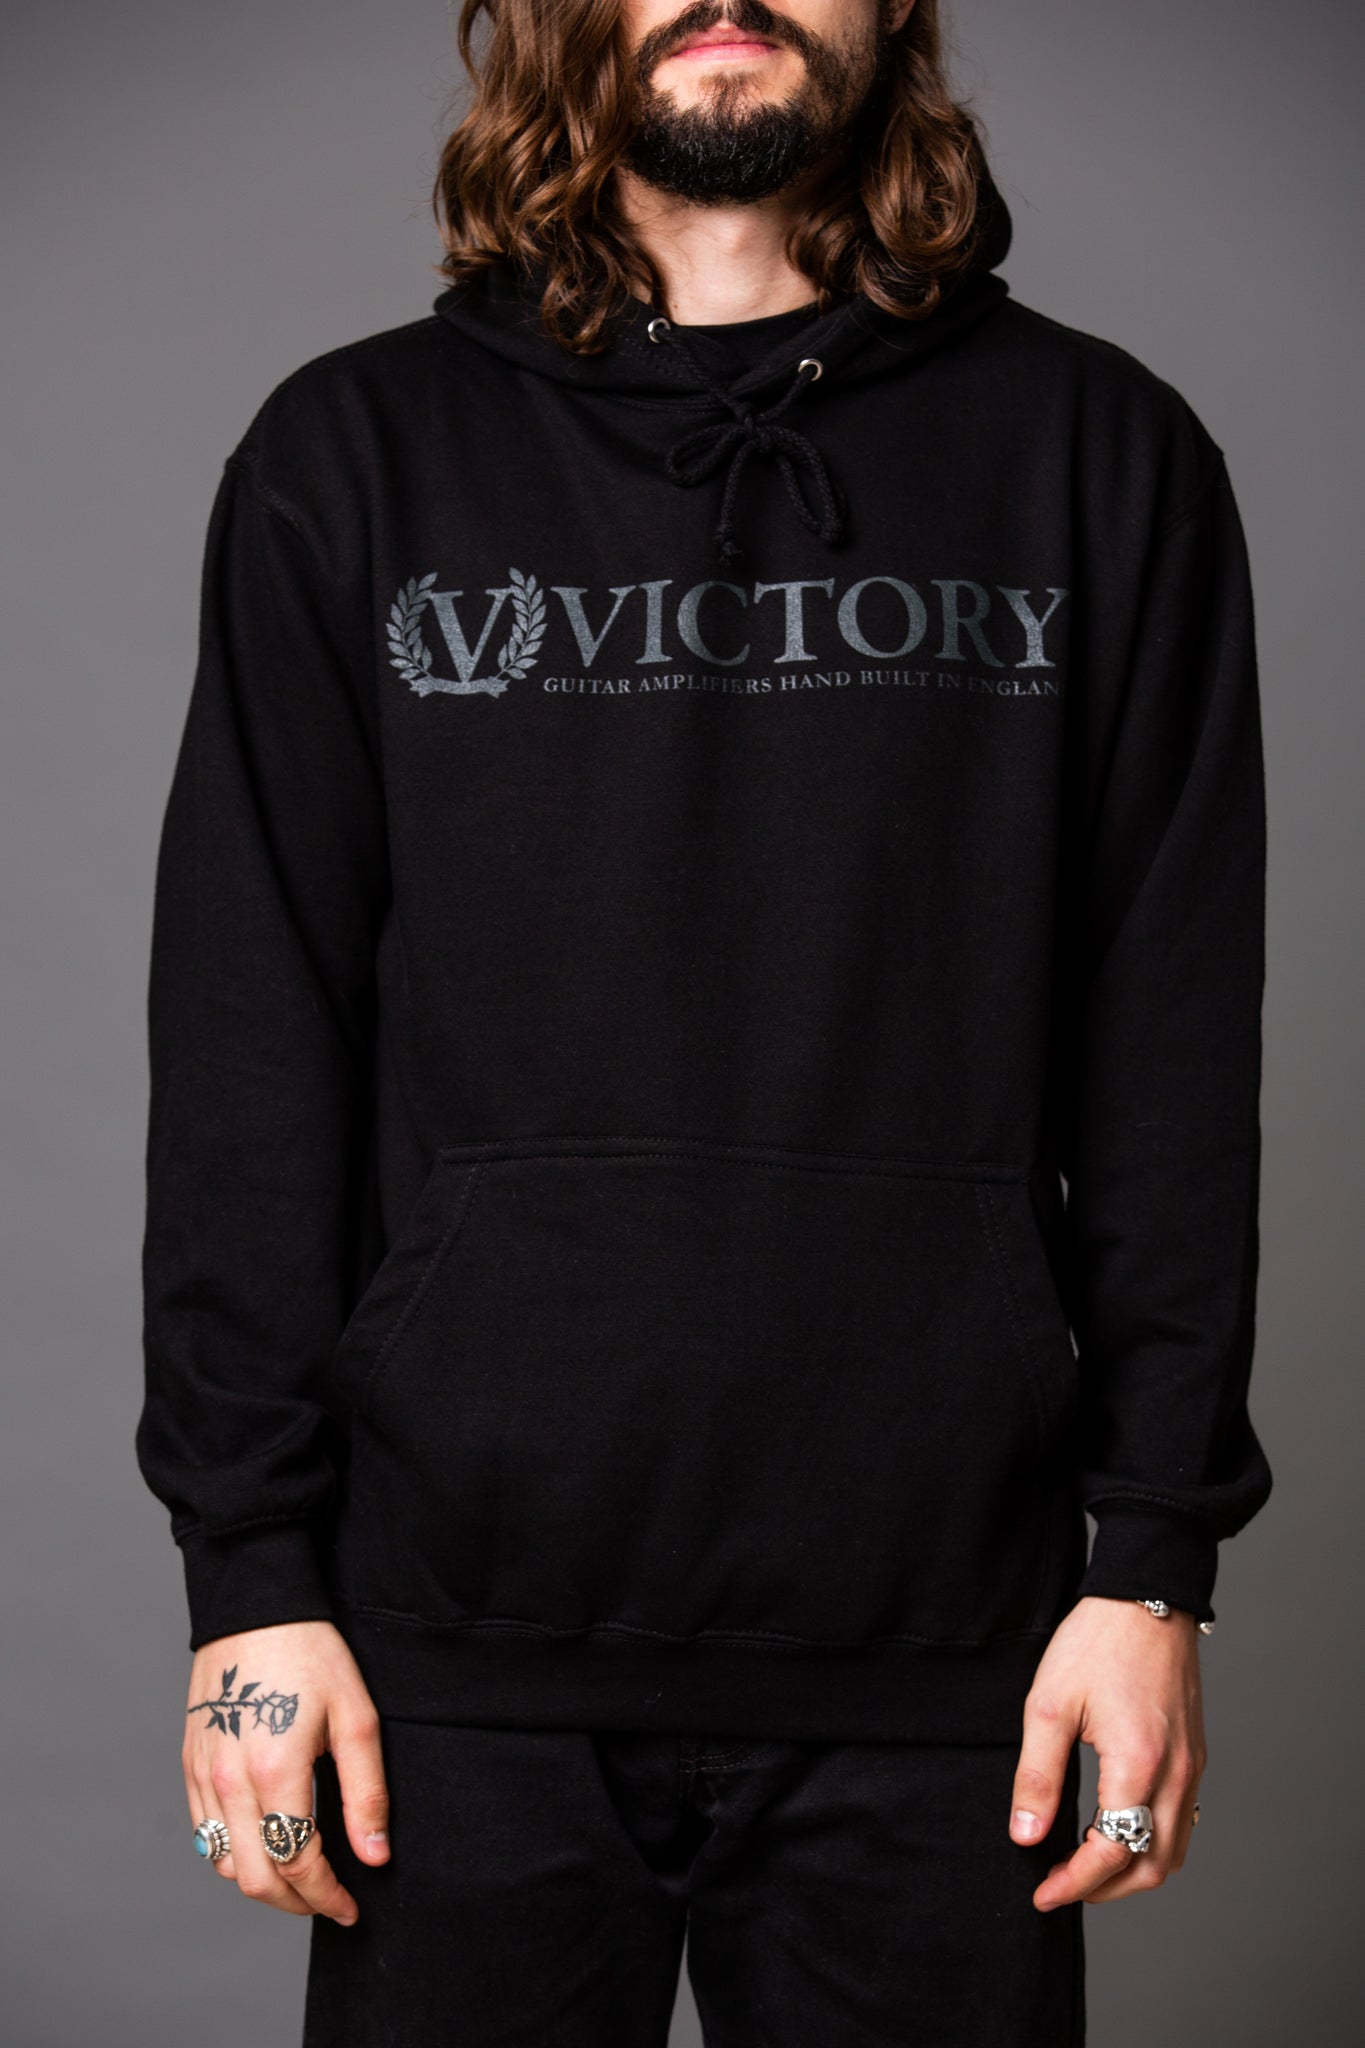 Official Victory Hoodie - Black with Black logo.